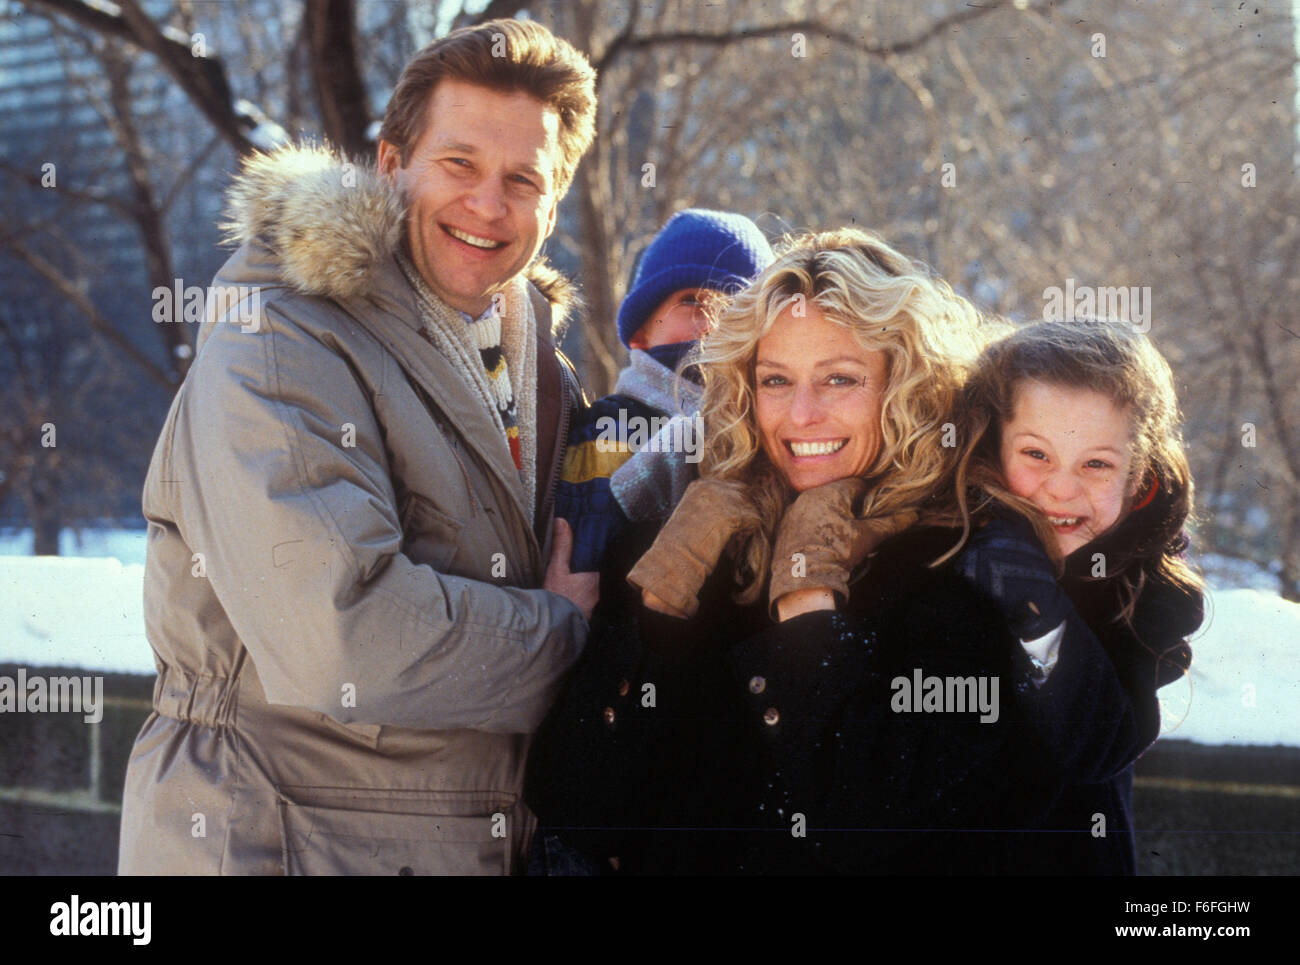 RELEASE DATE: April 14, 1989. MOVIE TITLE: See You in the Morning Moviestills . STUDIO: Lorimar Film Entertainment. - Stock Image